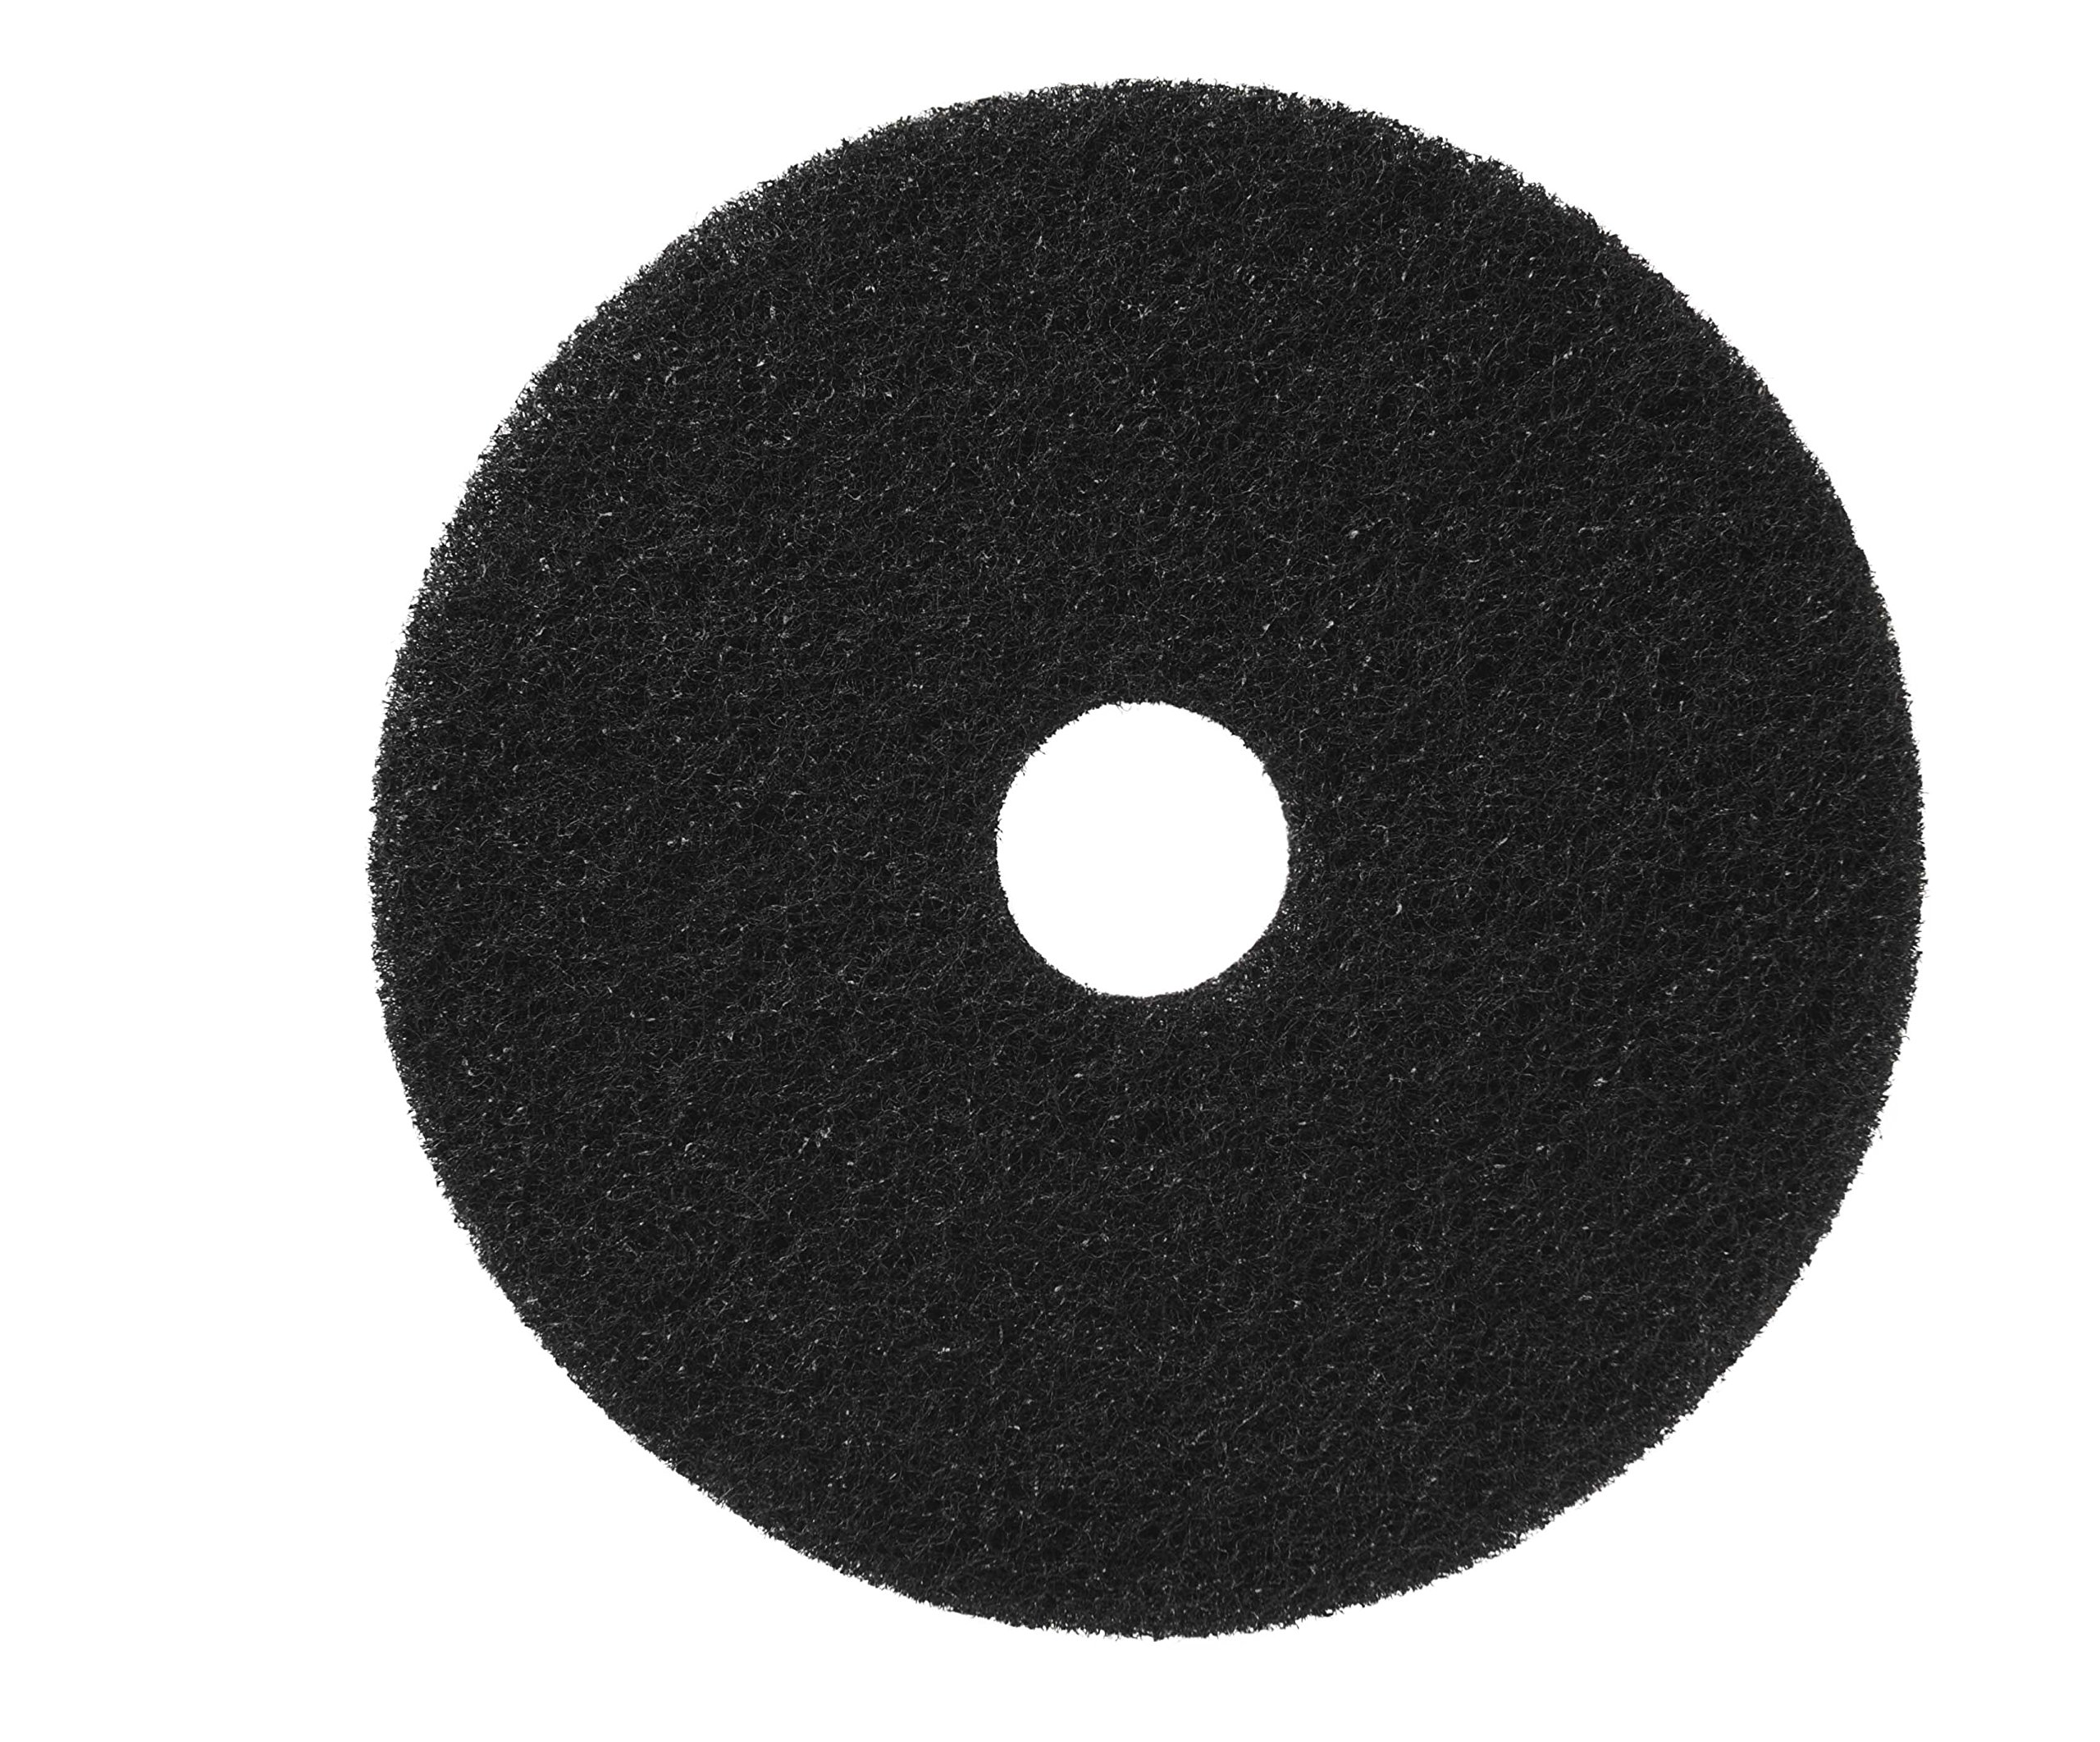 Glit/Microtron 400117 Standard Strip Pad, 17'', Black (Pack of 5) by Glit / Microtron